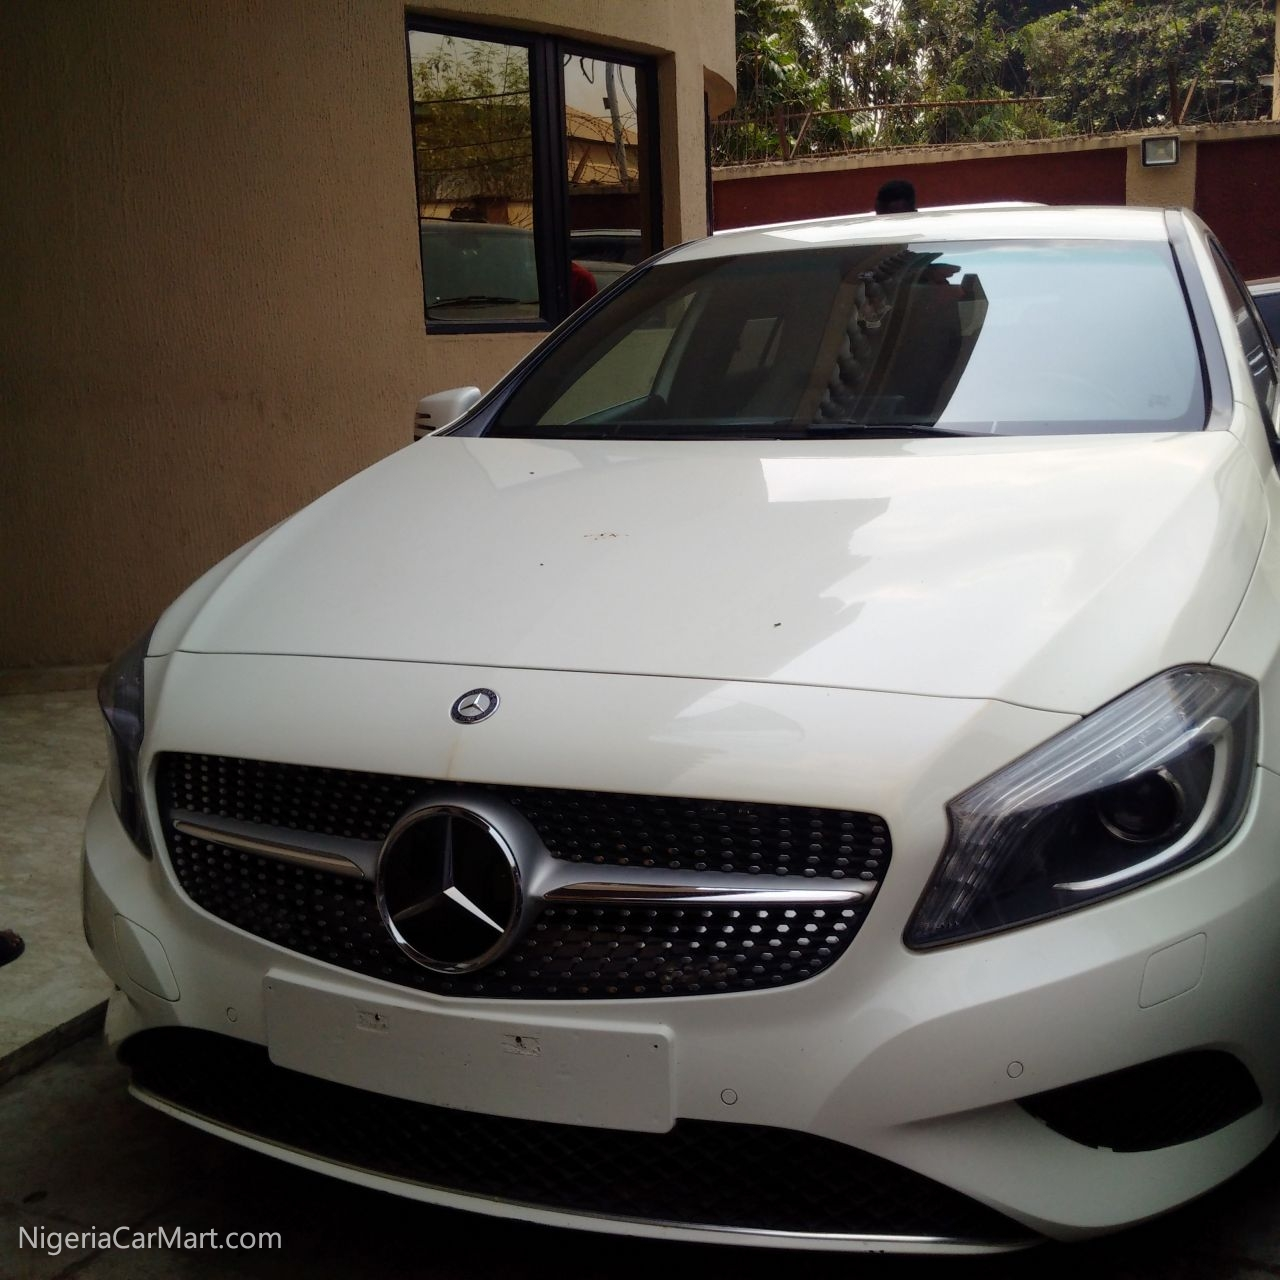 2015 mercedes benz c250 used car for sale in lagos nigeria for Used mercedes benz c250 for sale